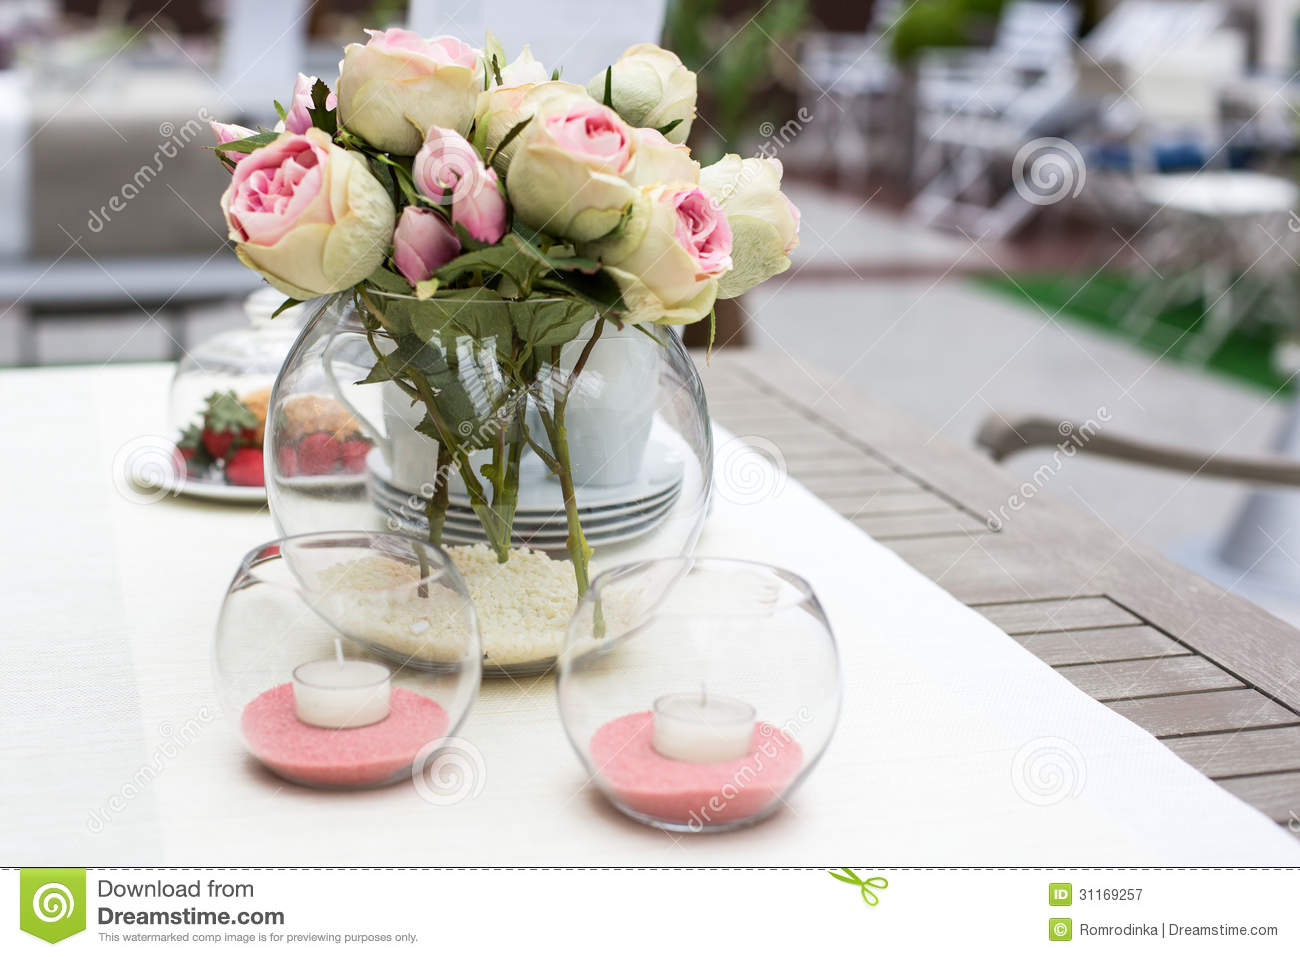 D coration de table de jardin d 39 t photographie stock - Table jardin rose ...